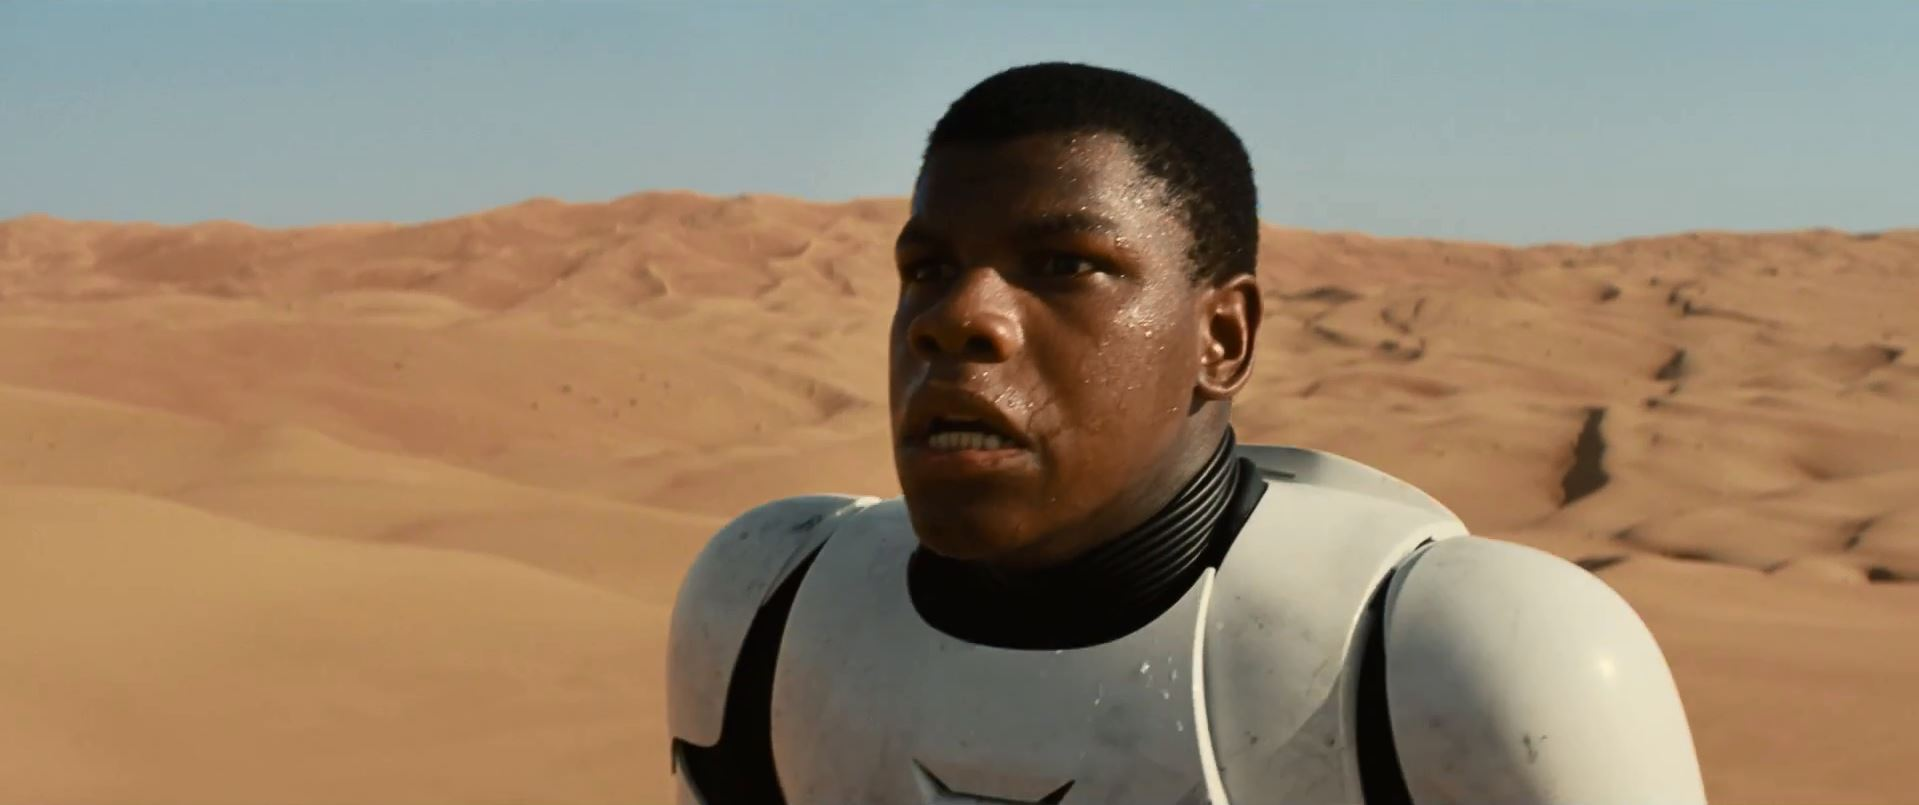 John Boyega in stormtrooper armour - Star Wars Episode 7 trailer released